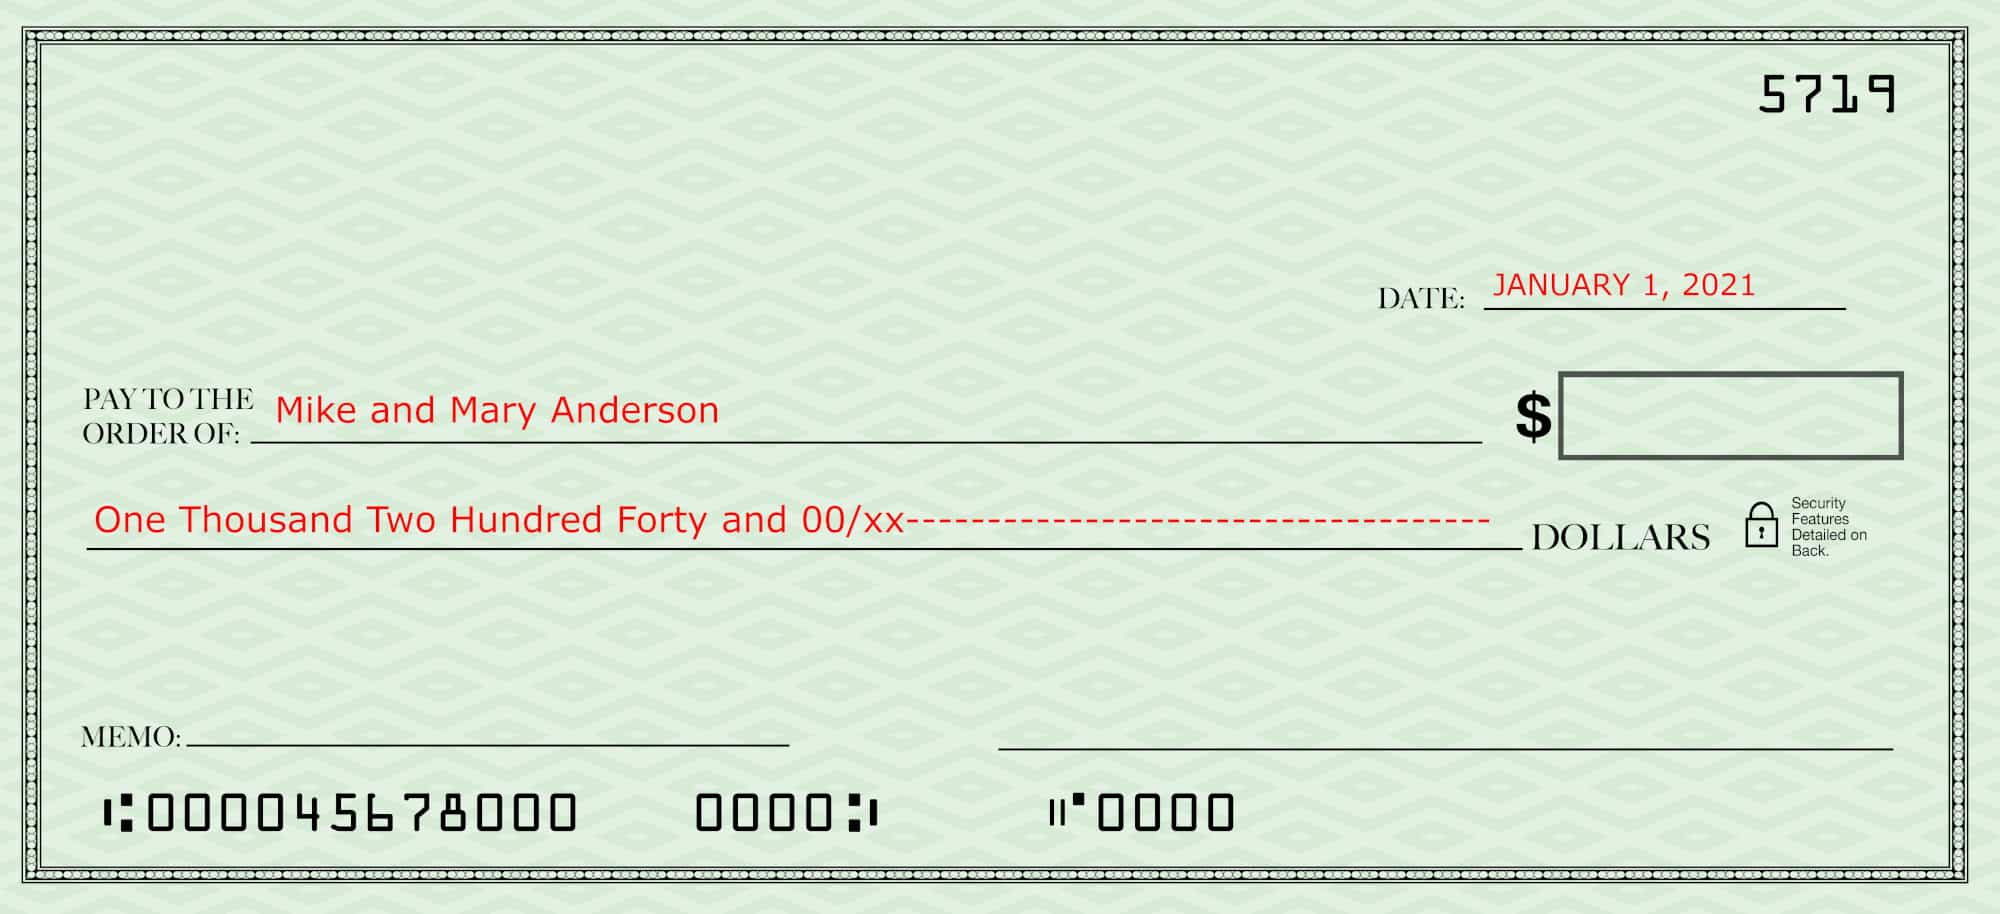 Filling out a check--blank check with the date, payee and amount in words filled in